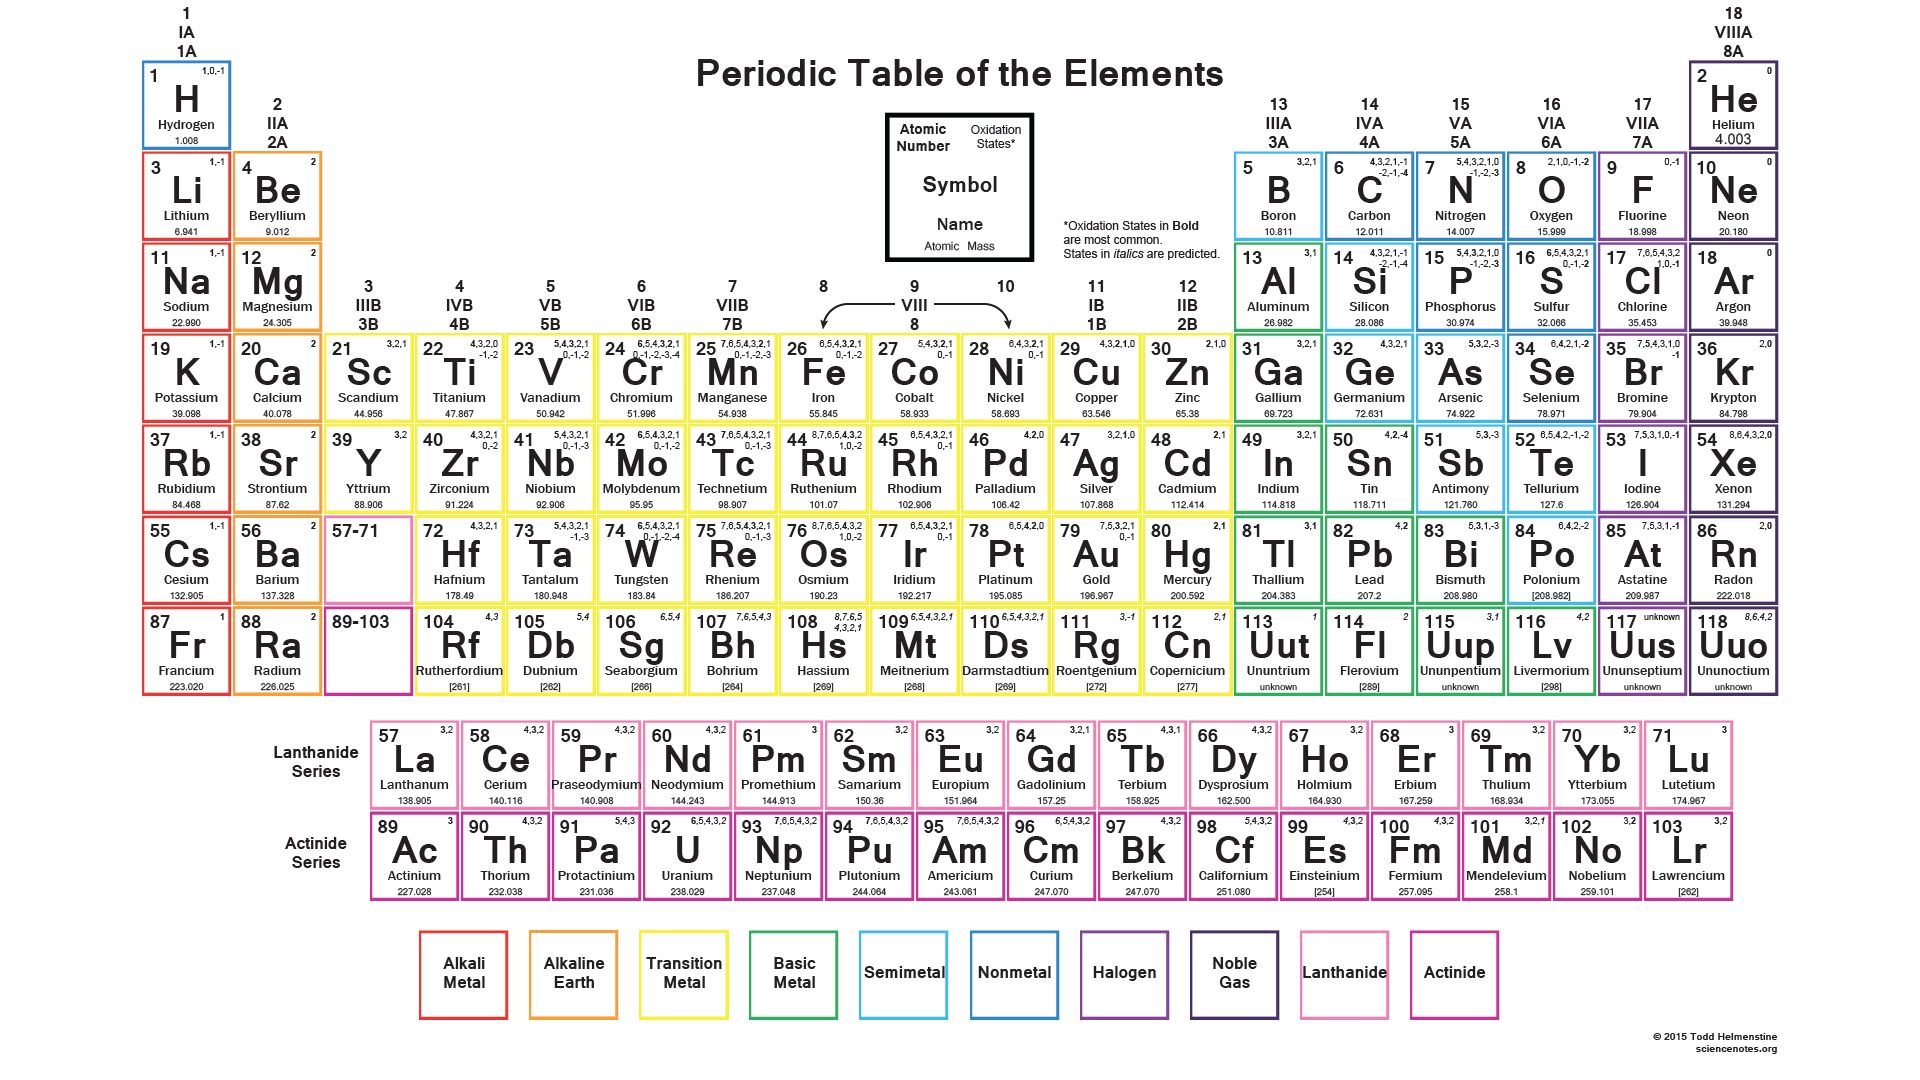 Printable periodic tables for chemistry science notes and projects color periodic table with oxidation states urtaz Choice Image